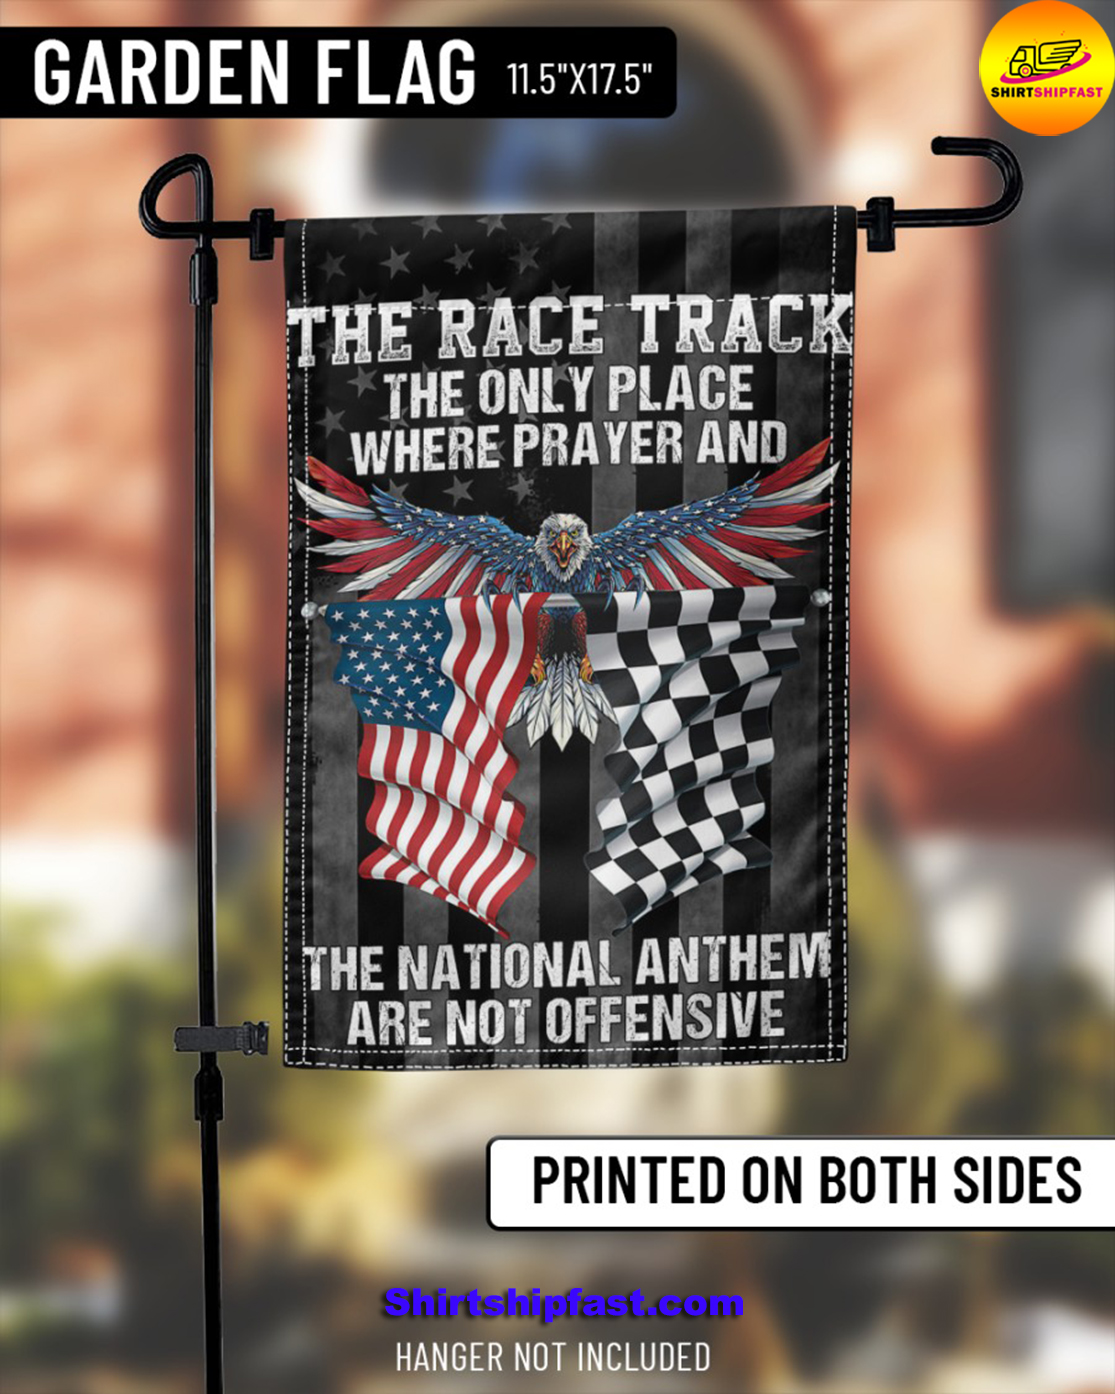 Eagle The race track the only place where prayer and the national anthem are not offensive flag - Picture 3